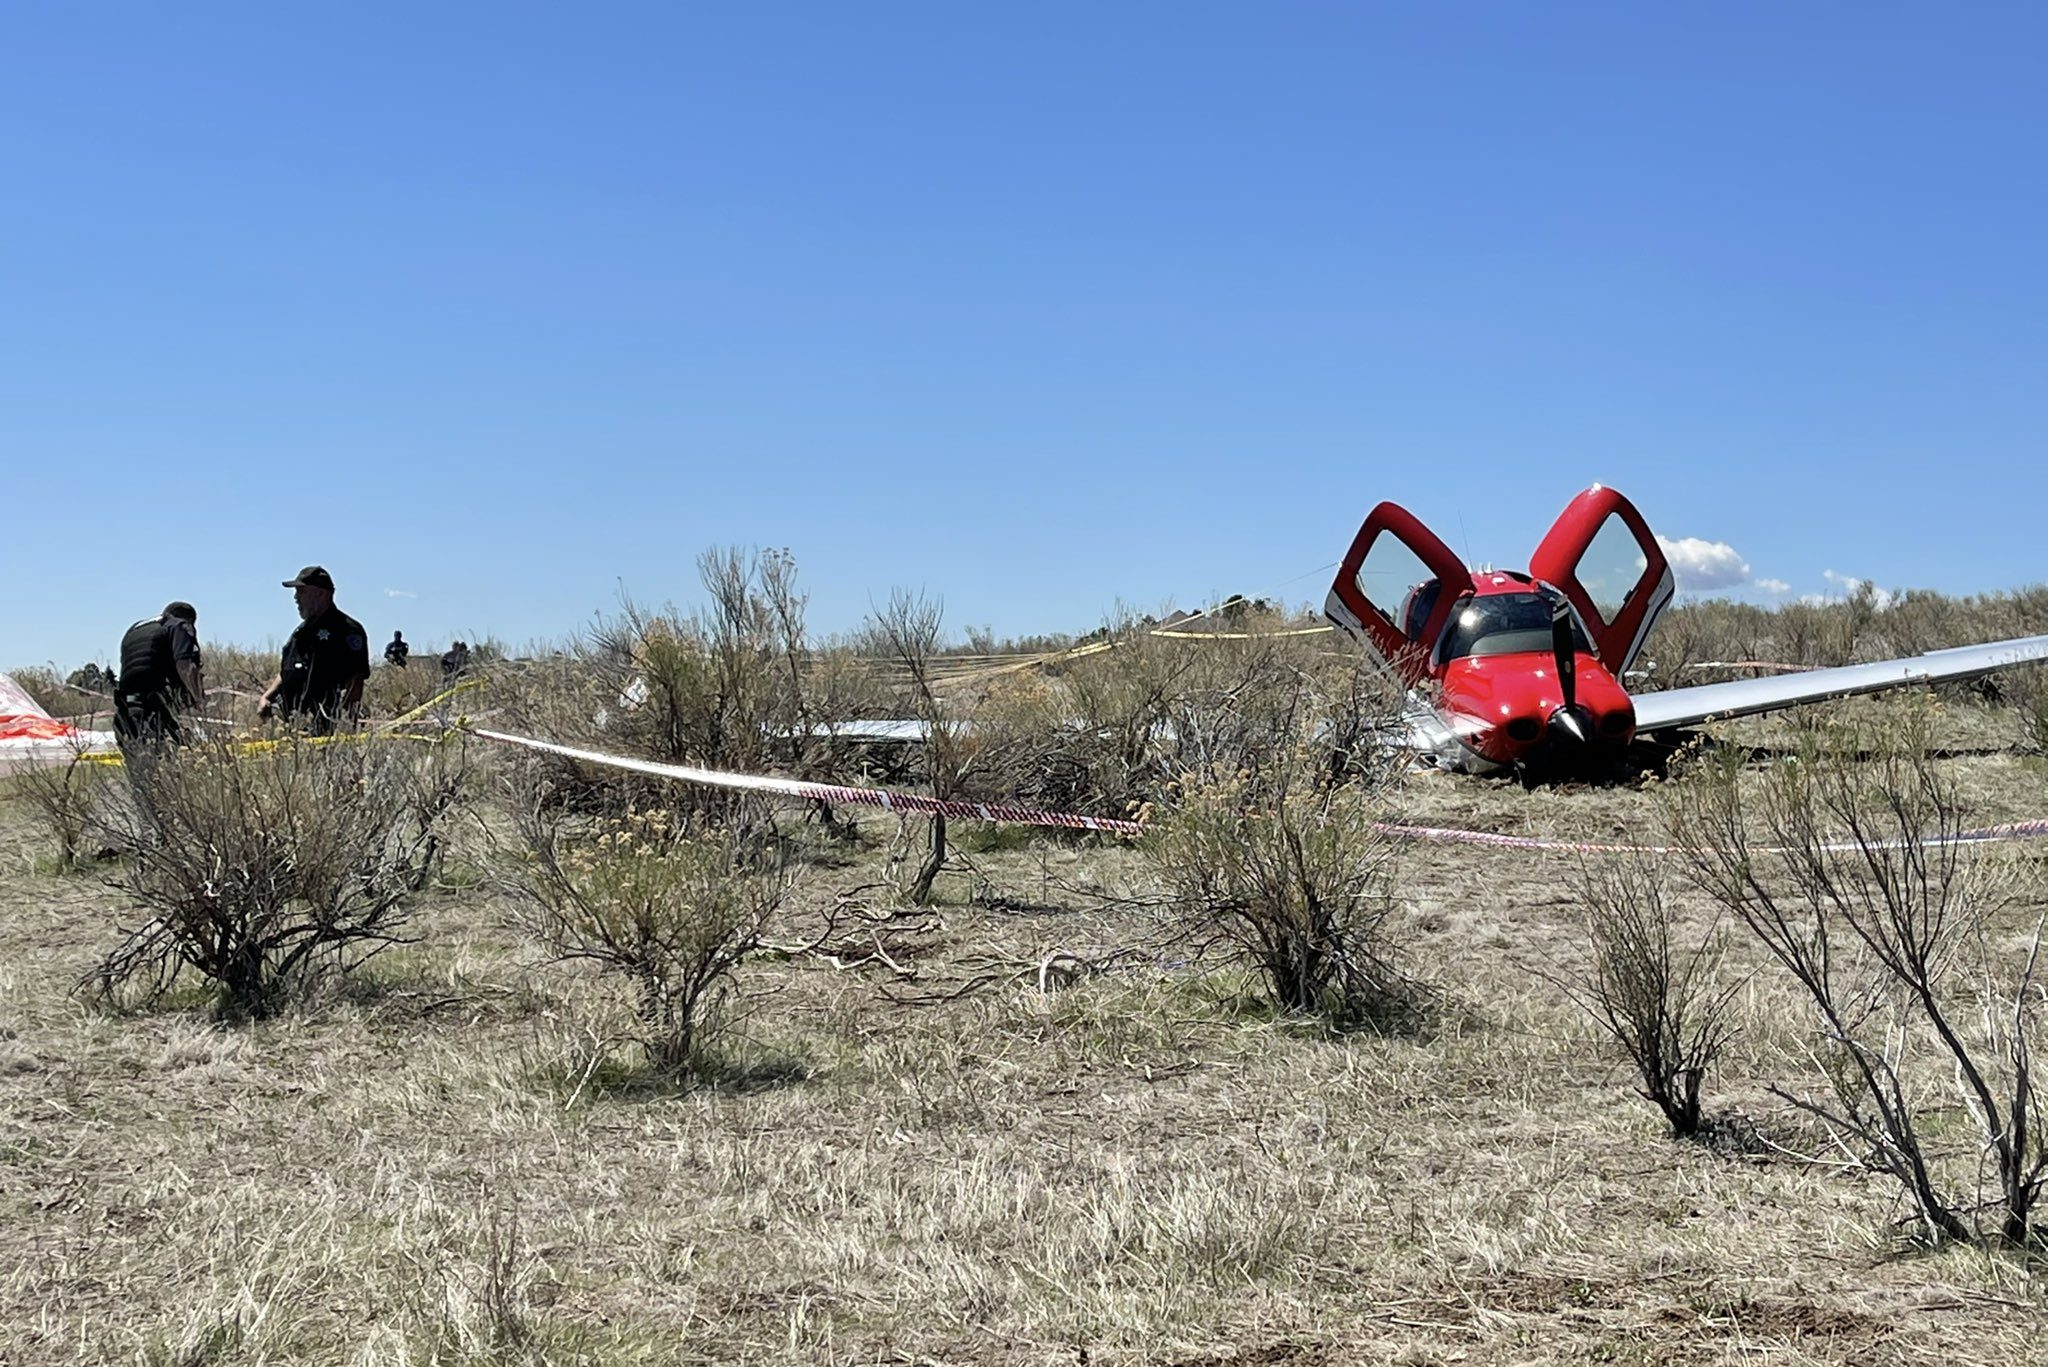 First responders investigating the scene after two small planes collided in mid-air over Cherry Creek State Park.